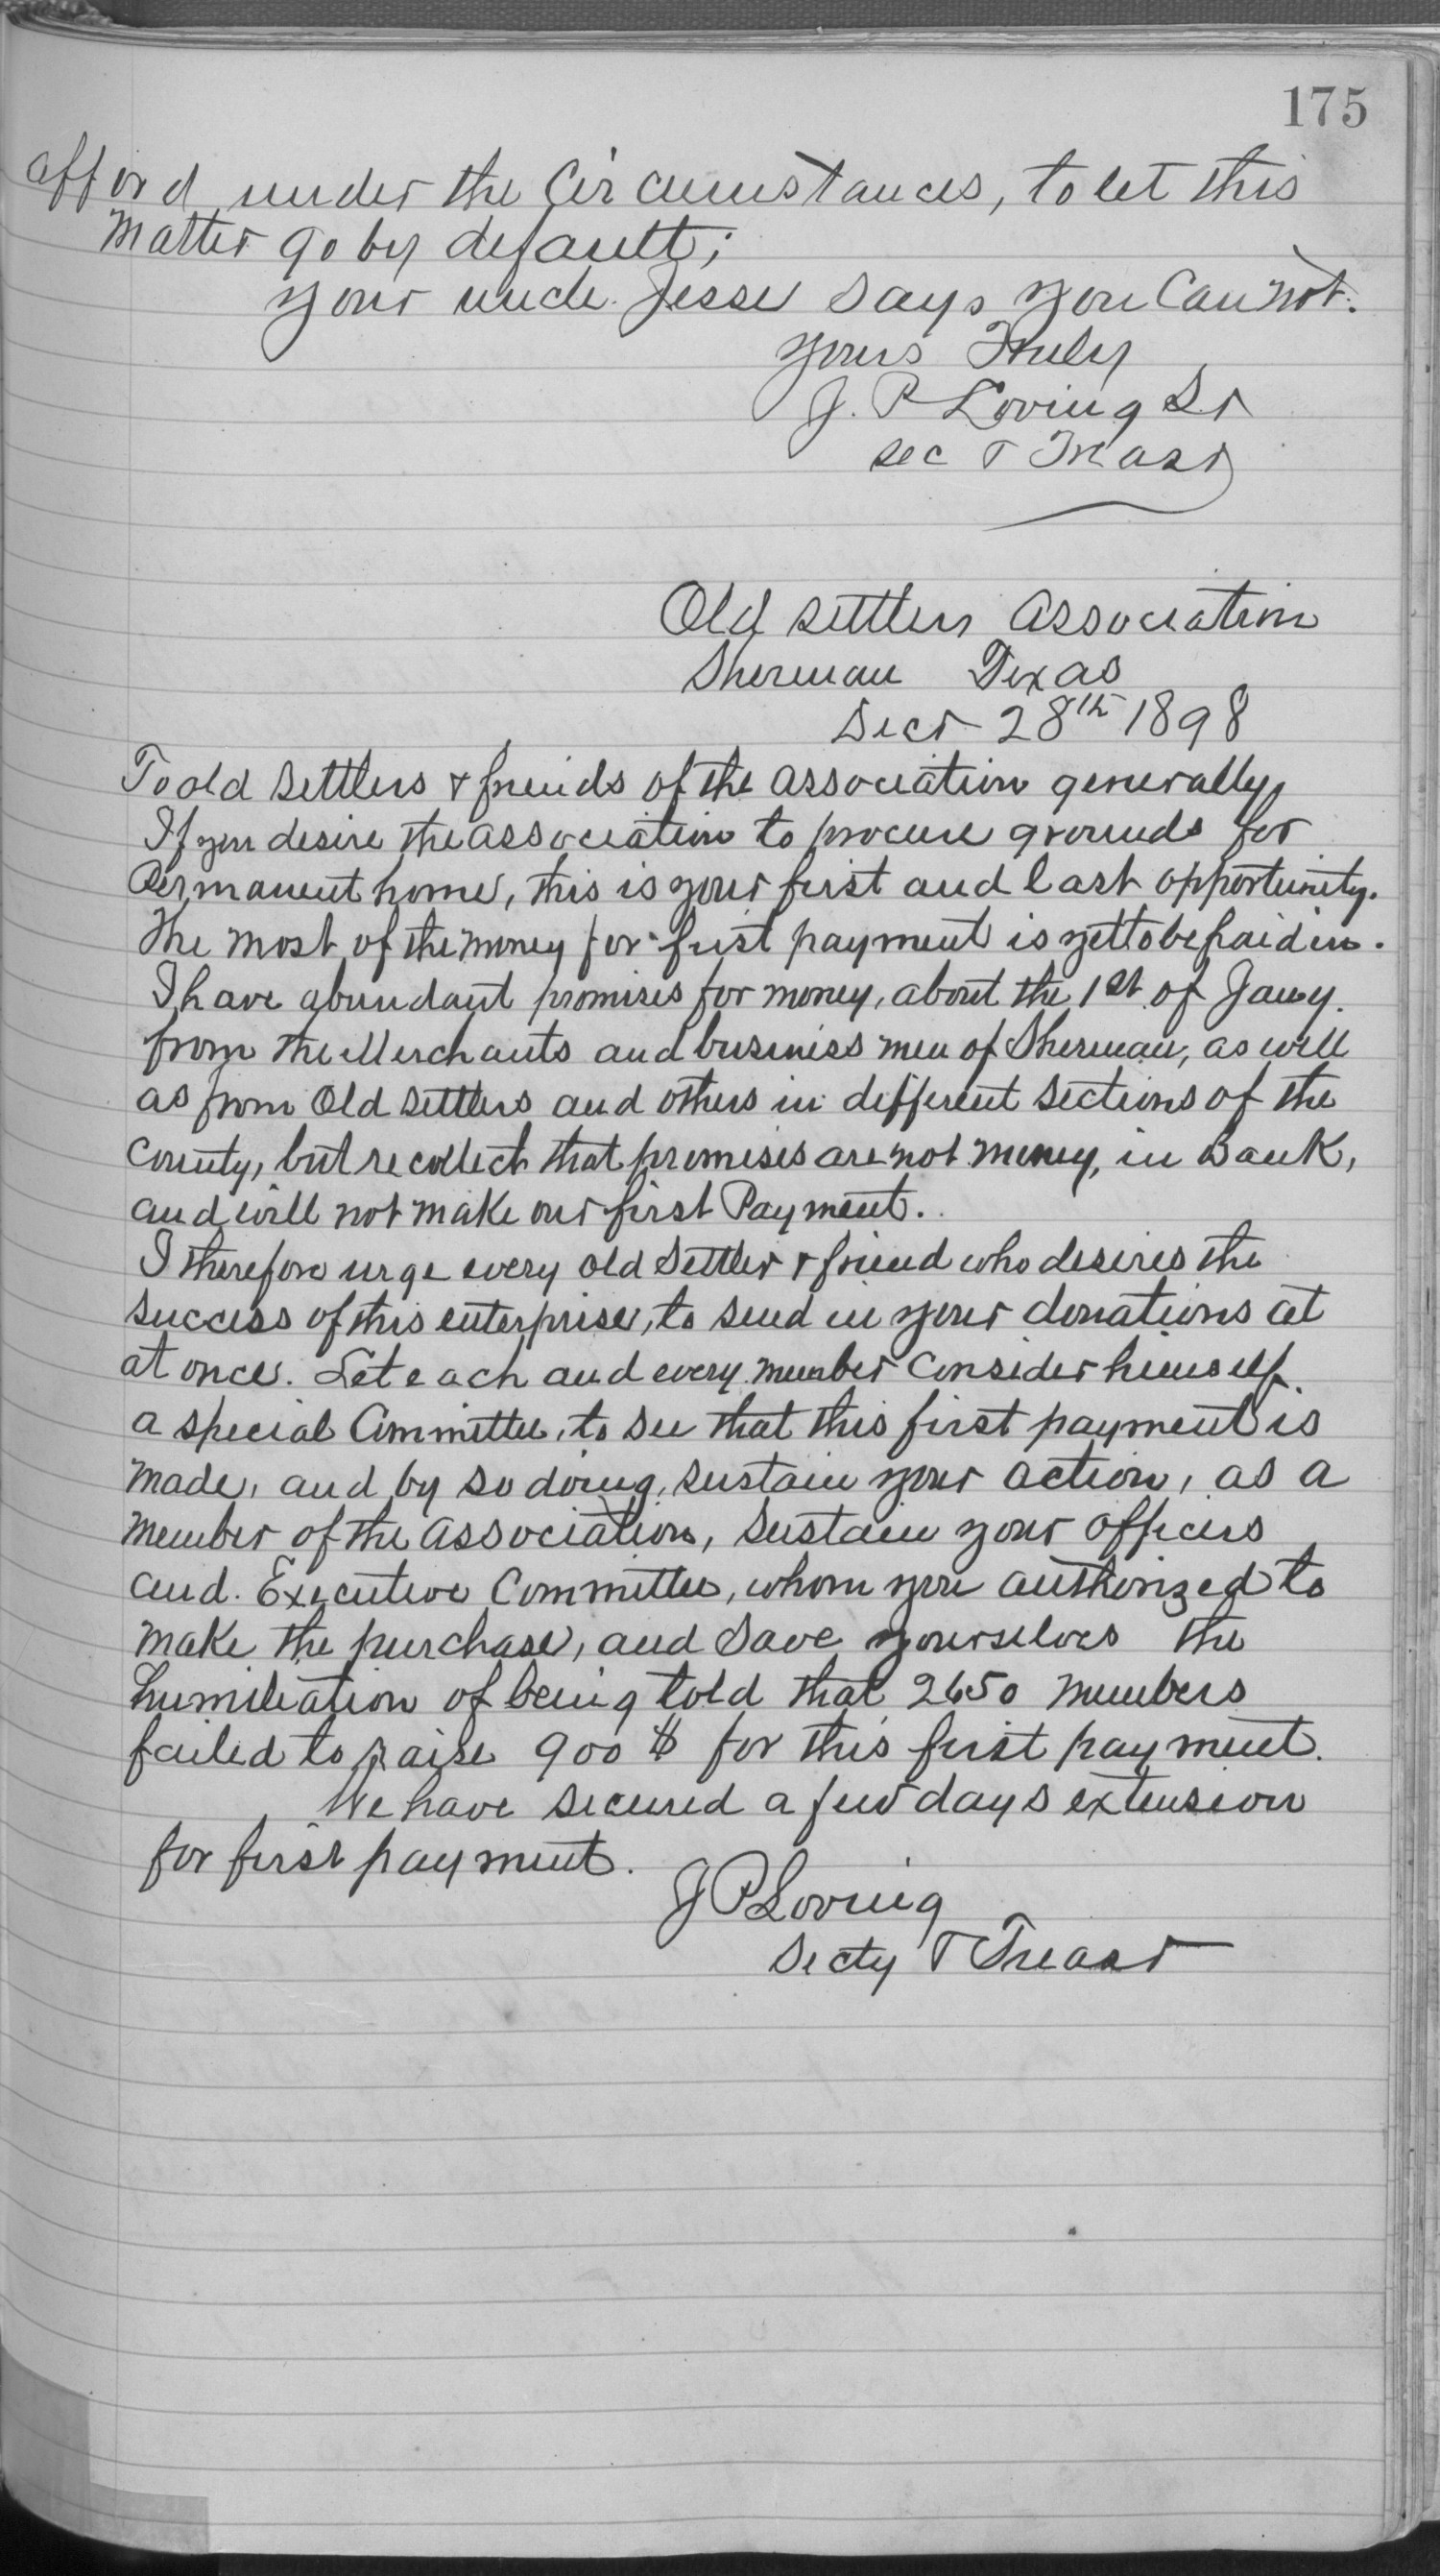 Old Settler's Association of Grayson County, Vol. 1.                                                                                                      [Sequence #]: 175 of 322